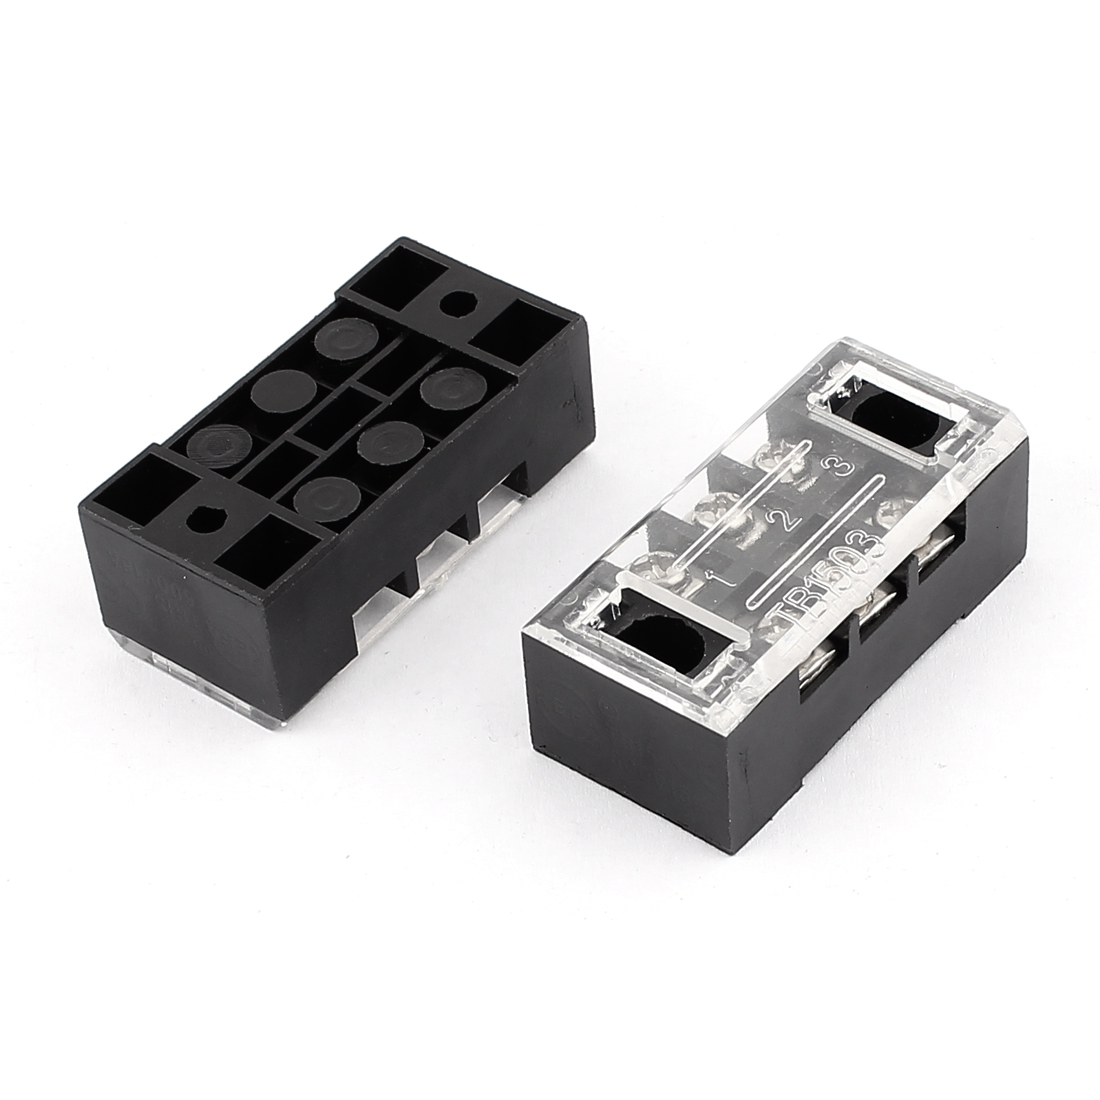 2 Pcs TB1503 Dual Rows 3 Positions 3P Terminal Blocks Barrier 600V 15A